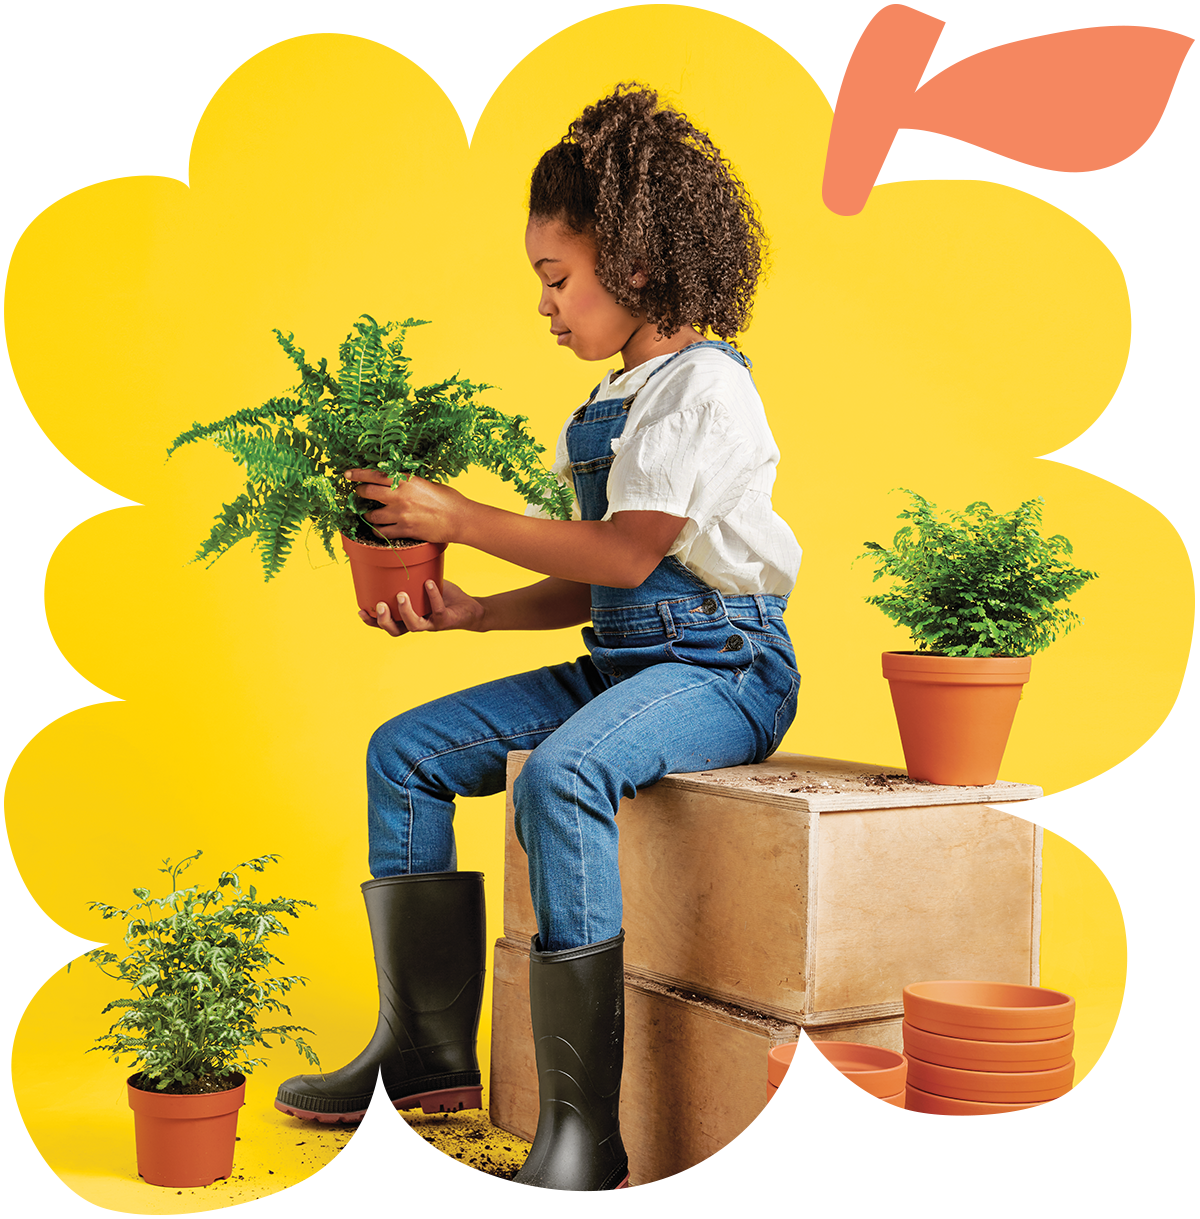 A young girl potting plants sitting on wooden blocks in the background of an animated image of grapes.